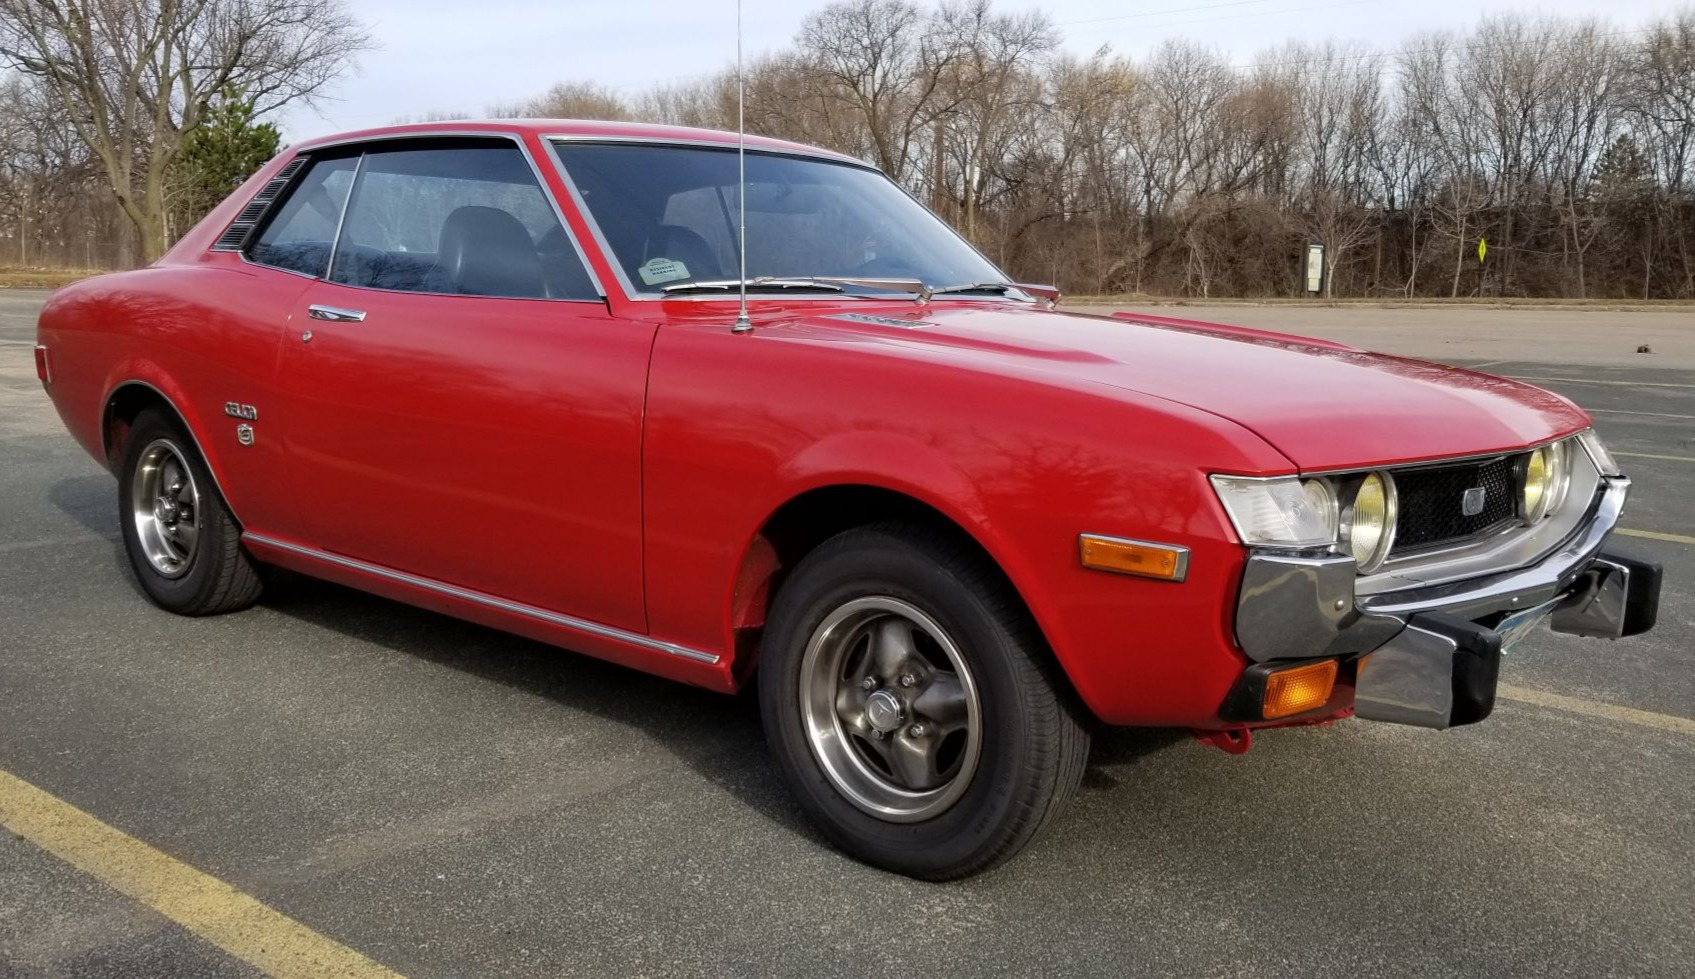 hight resolution of 1974 toyota celica gt 5 speed for sale on bat auctions sold for 12 750 on may 6 2019 lot 18 535 bring a trailer